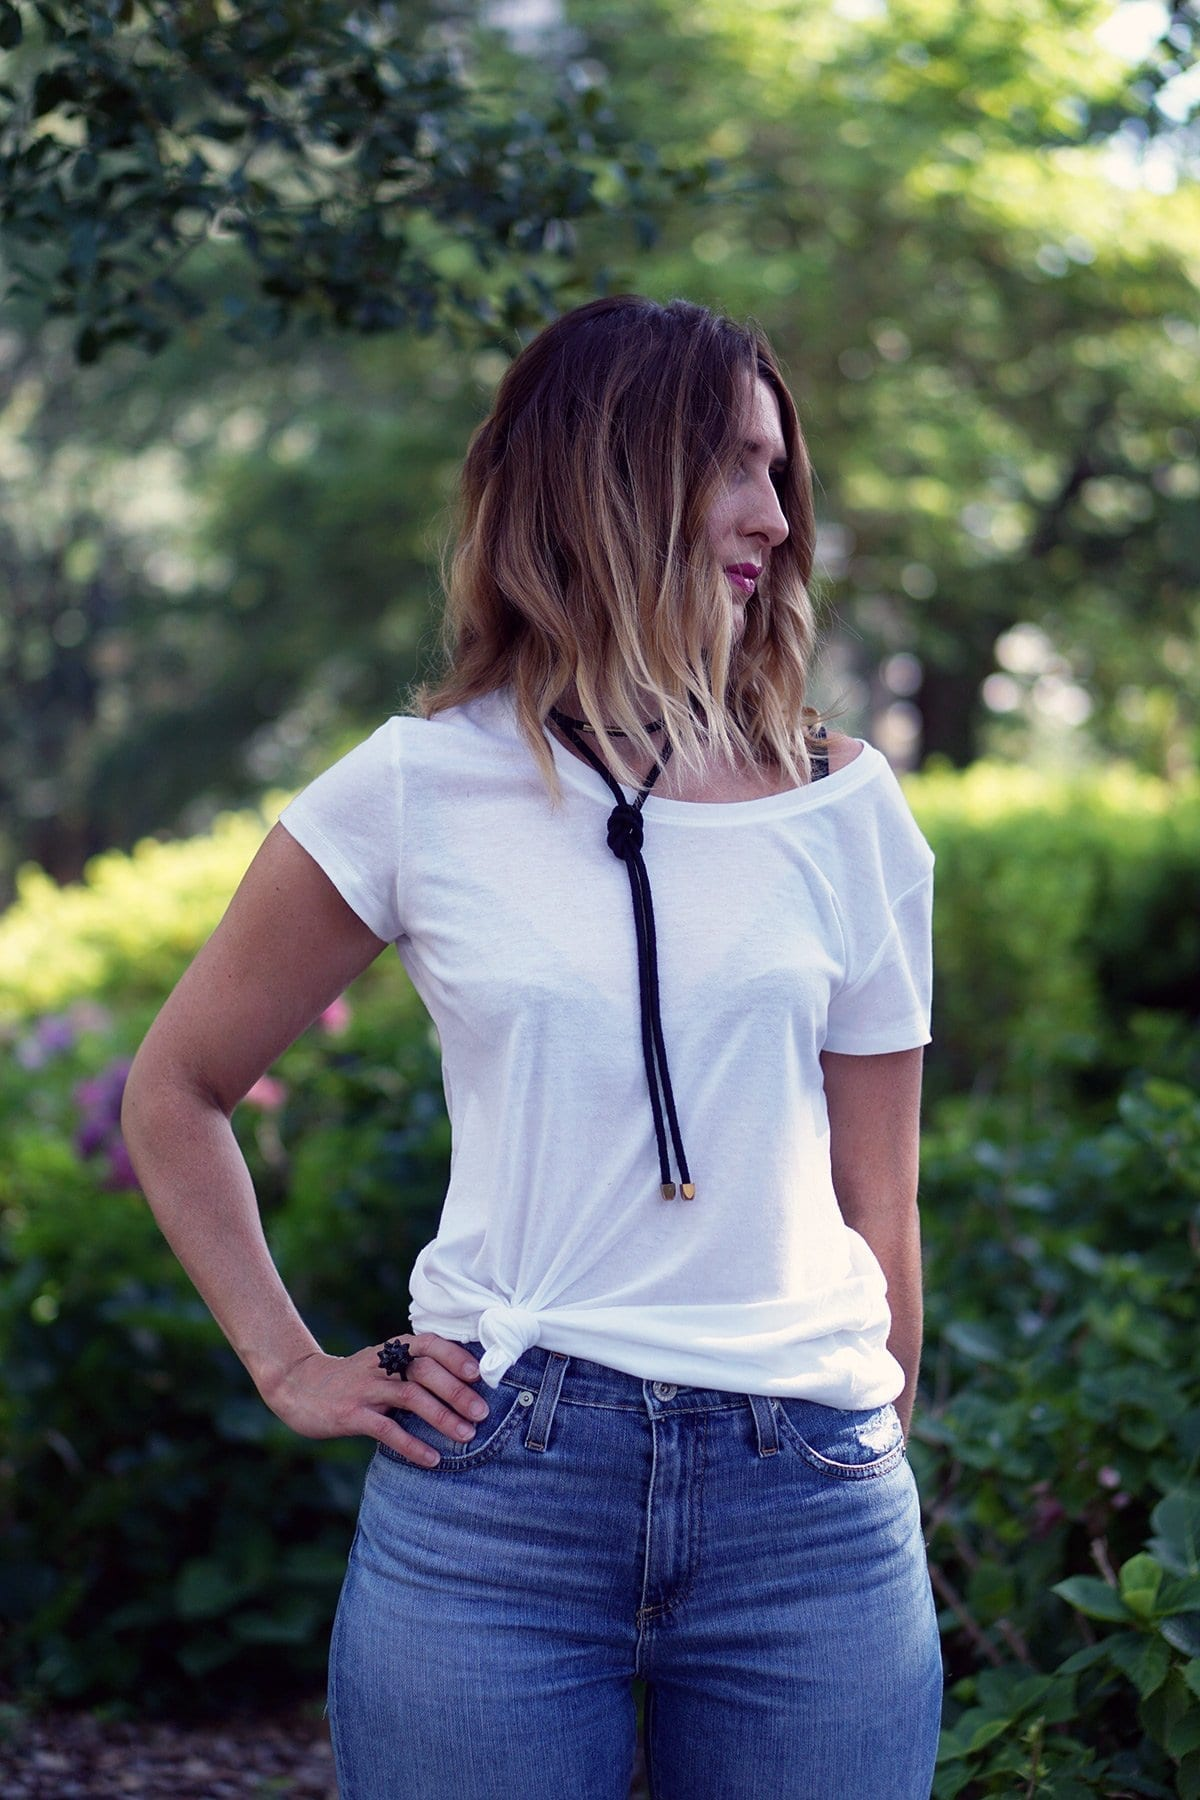 Three simple ways to breathe new life into a plain t-shirt | A white tee is a wardrobe staple, tie it in a knot to add shape, tuck it into your favorite party skirt for everyday, and layer it under a dress